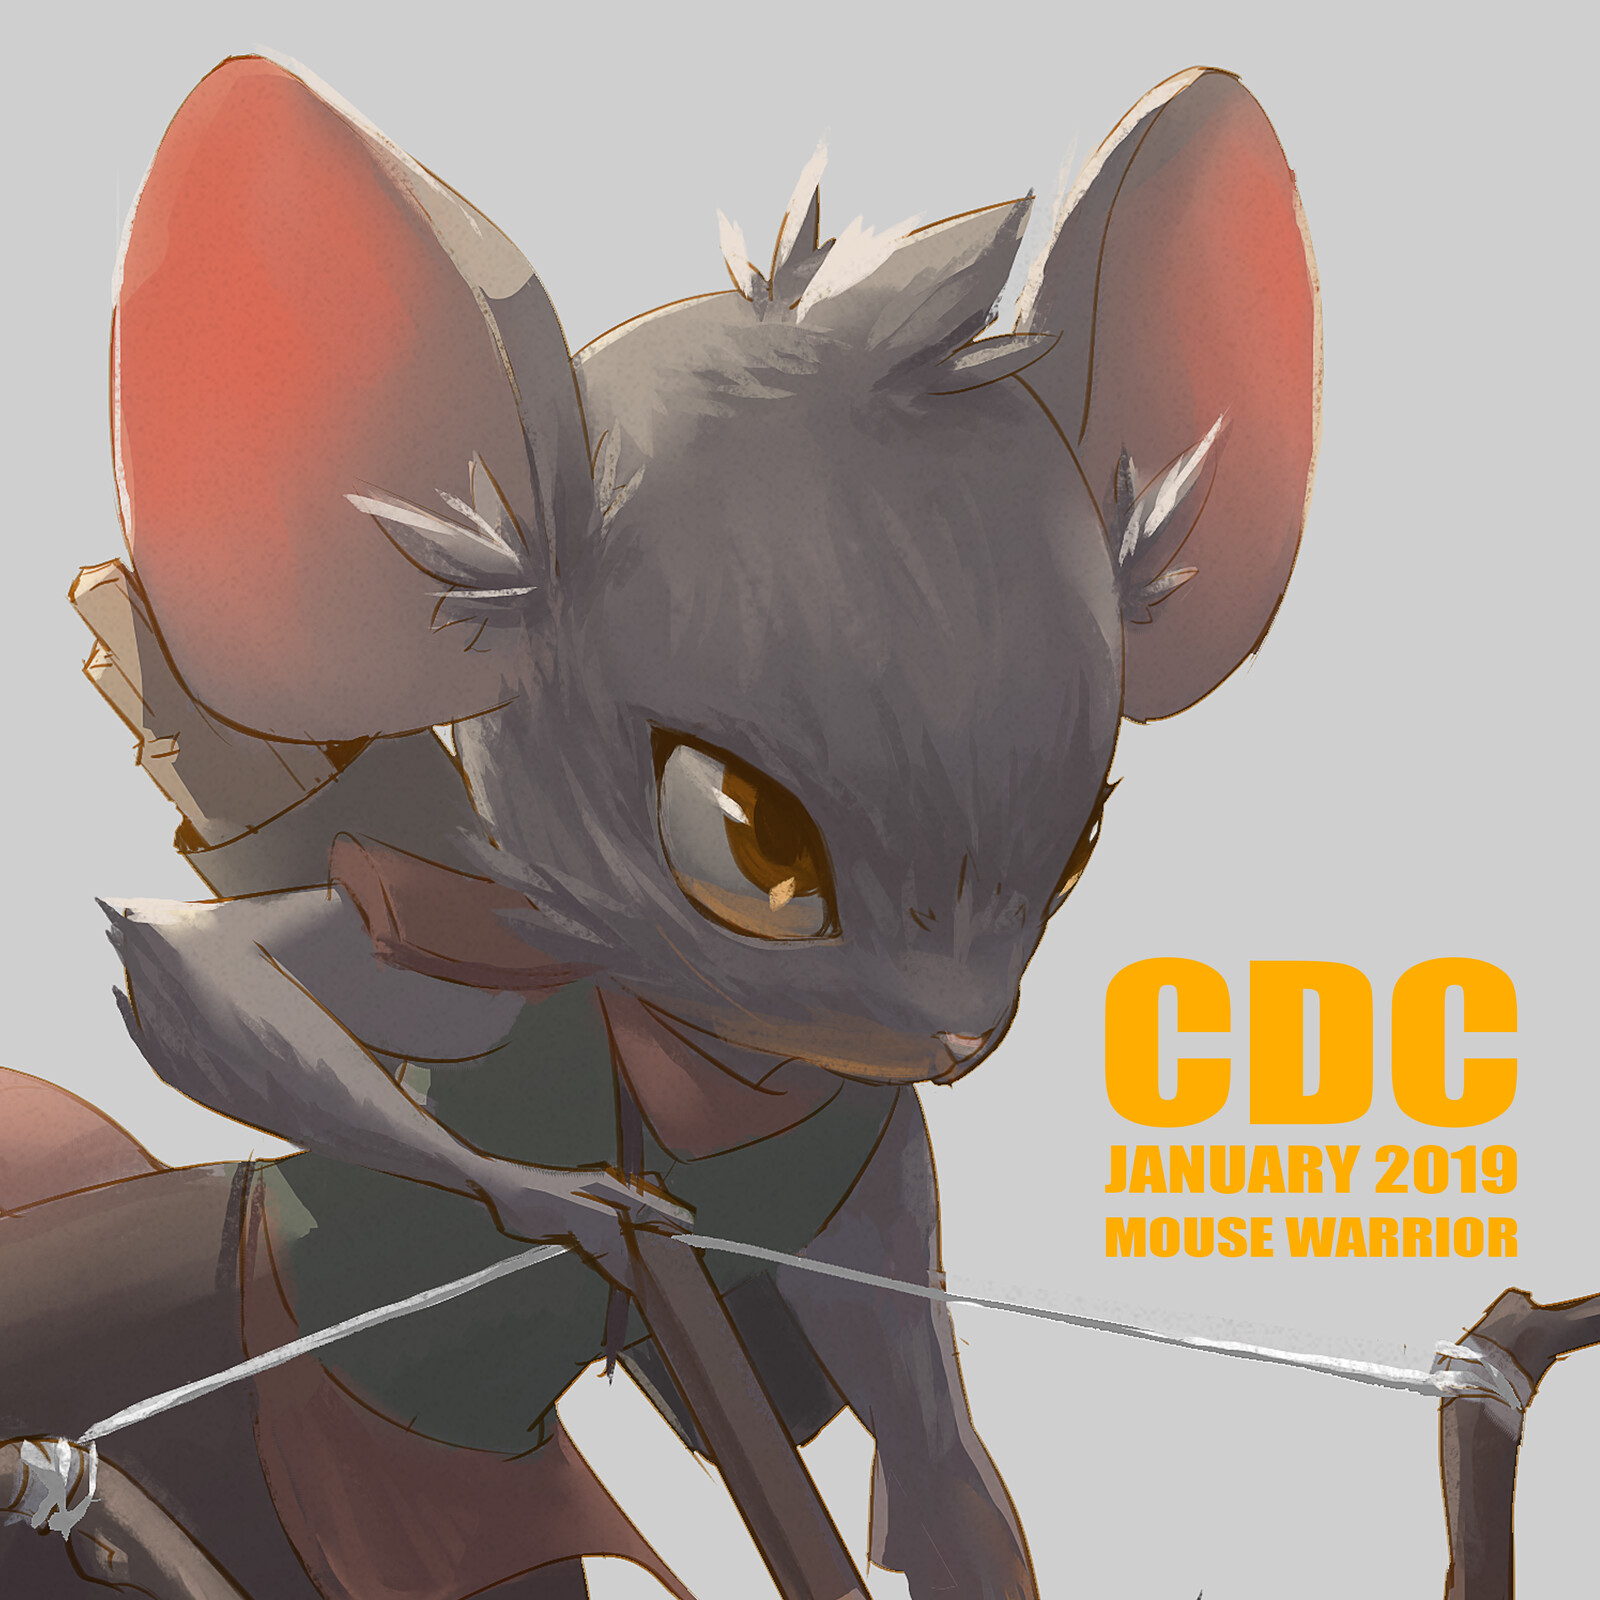 CDC-January 2019: Mouse Warrior